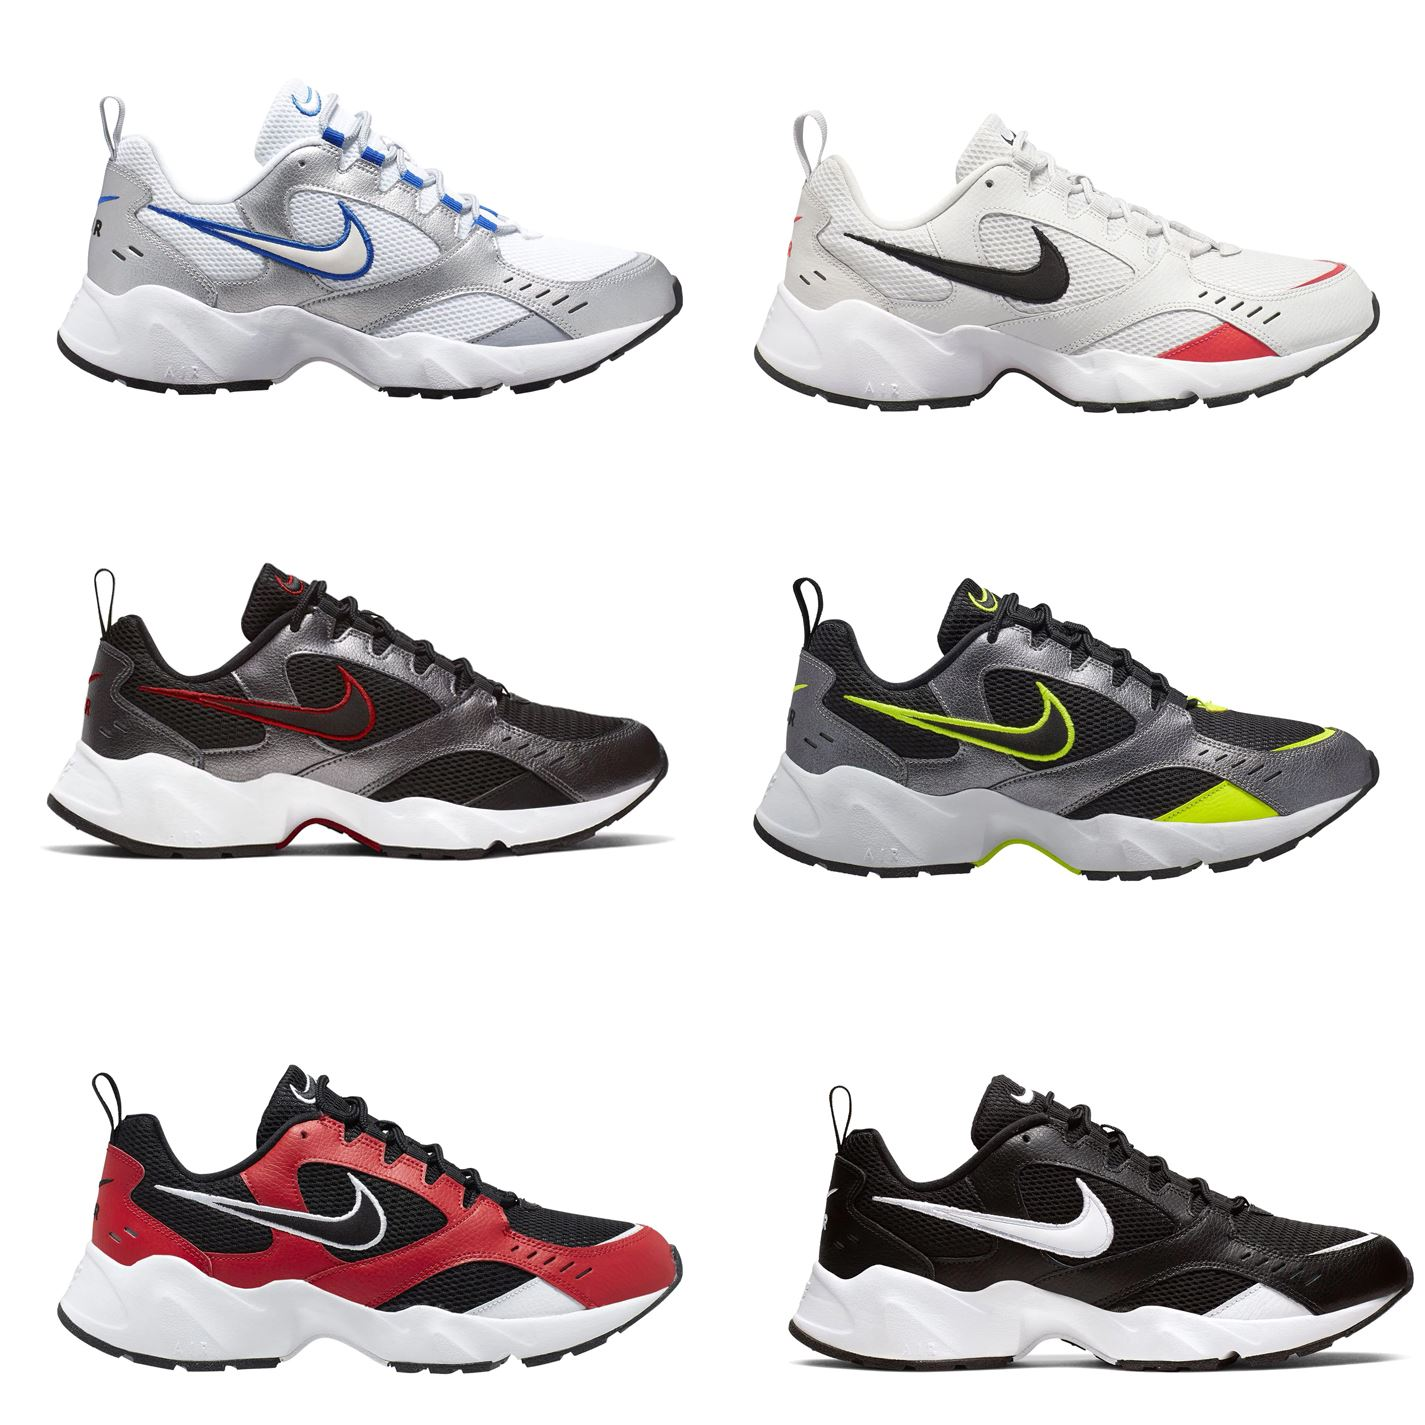 Details about Nike Air Heights Trainers Mens Running Atlheisure Footwear  Laced Shoes Sneakers